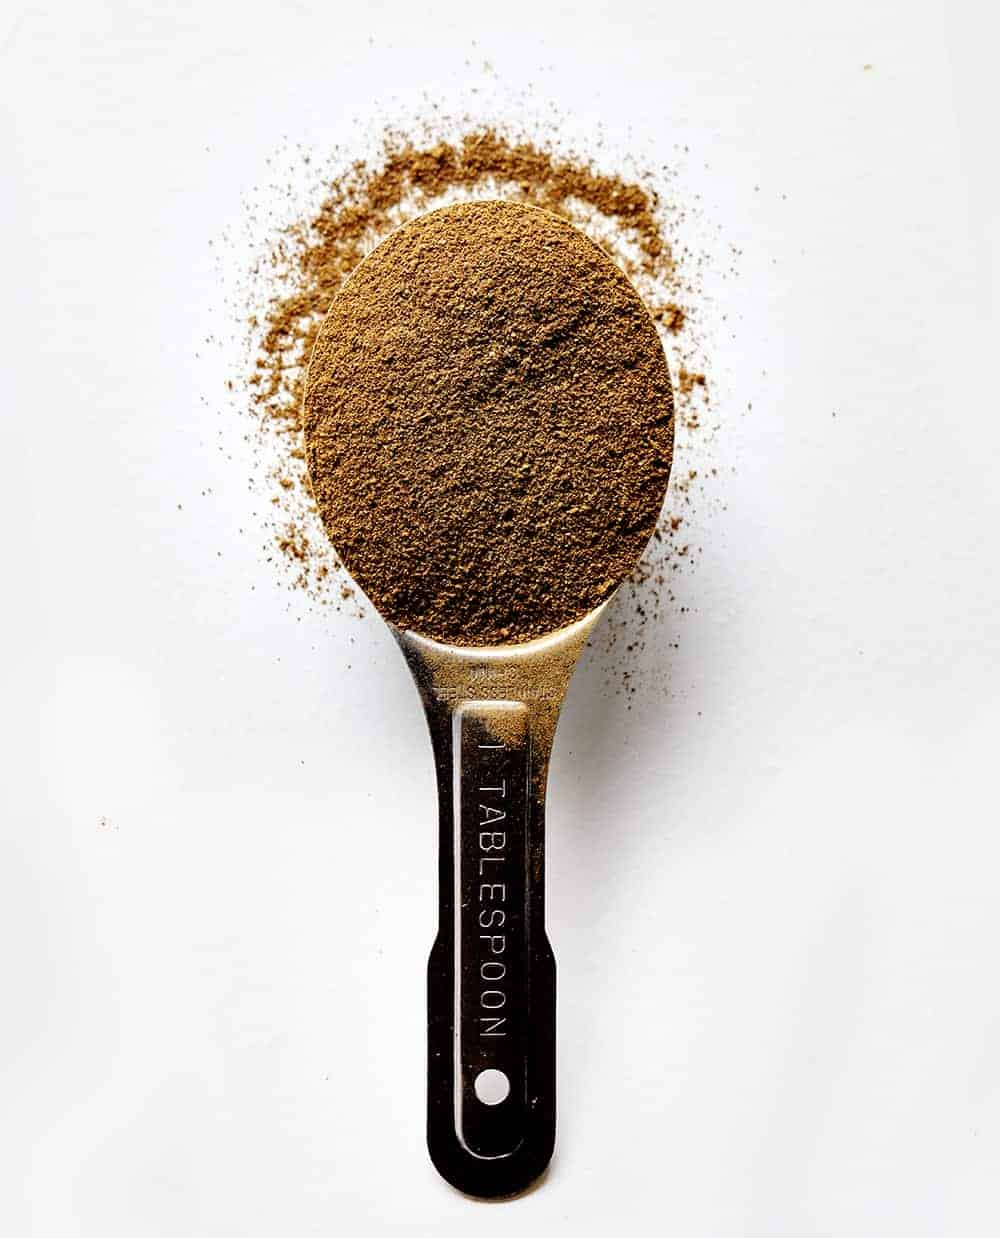 Spoonful of Homemade Apple Pie Spice